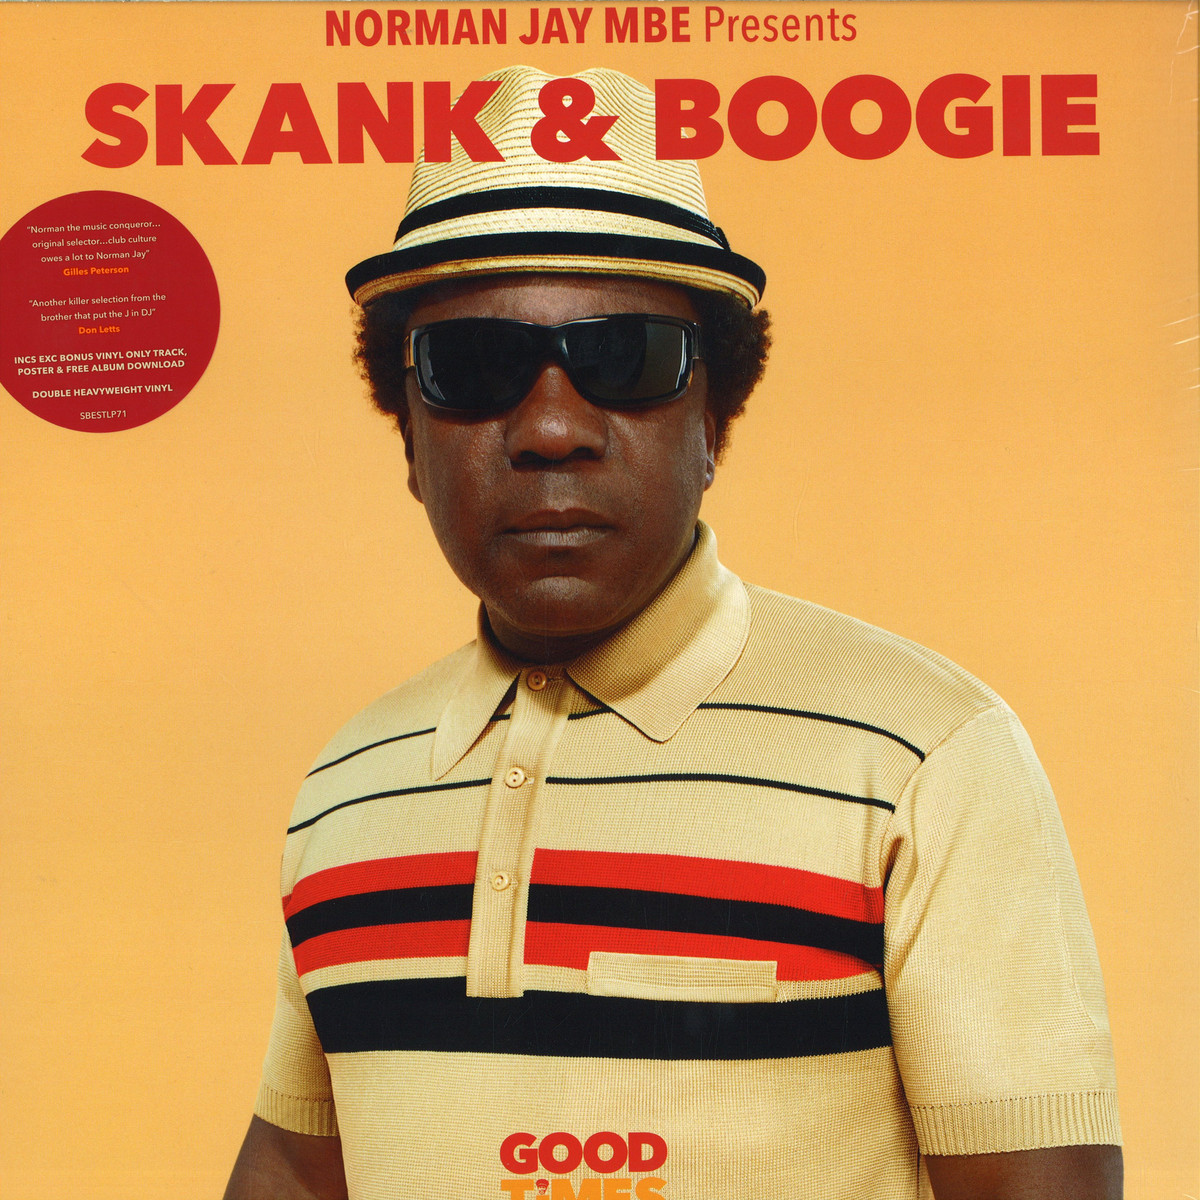 Various Artists Norman Jay Mbe Presents Skank Boogie Sunday Best Sbestlp71 Vinyl